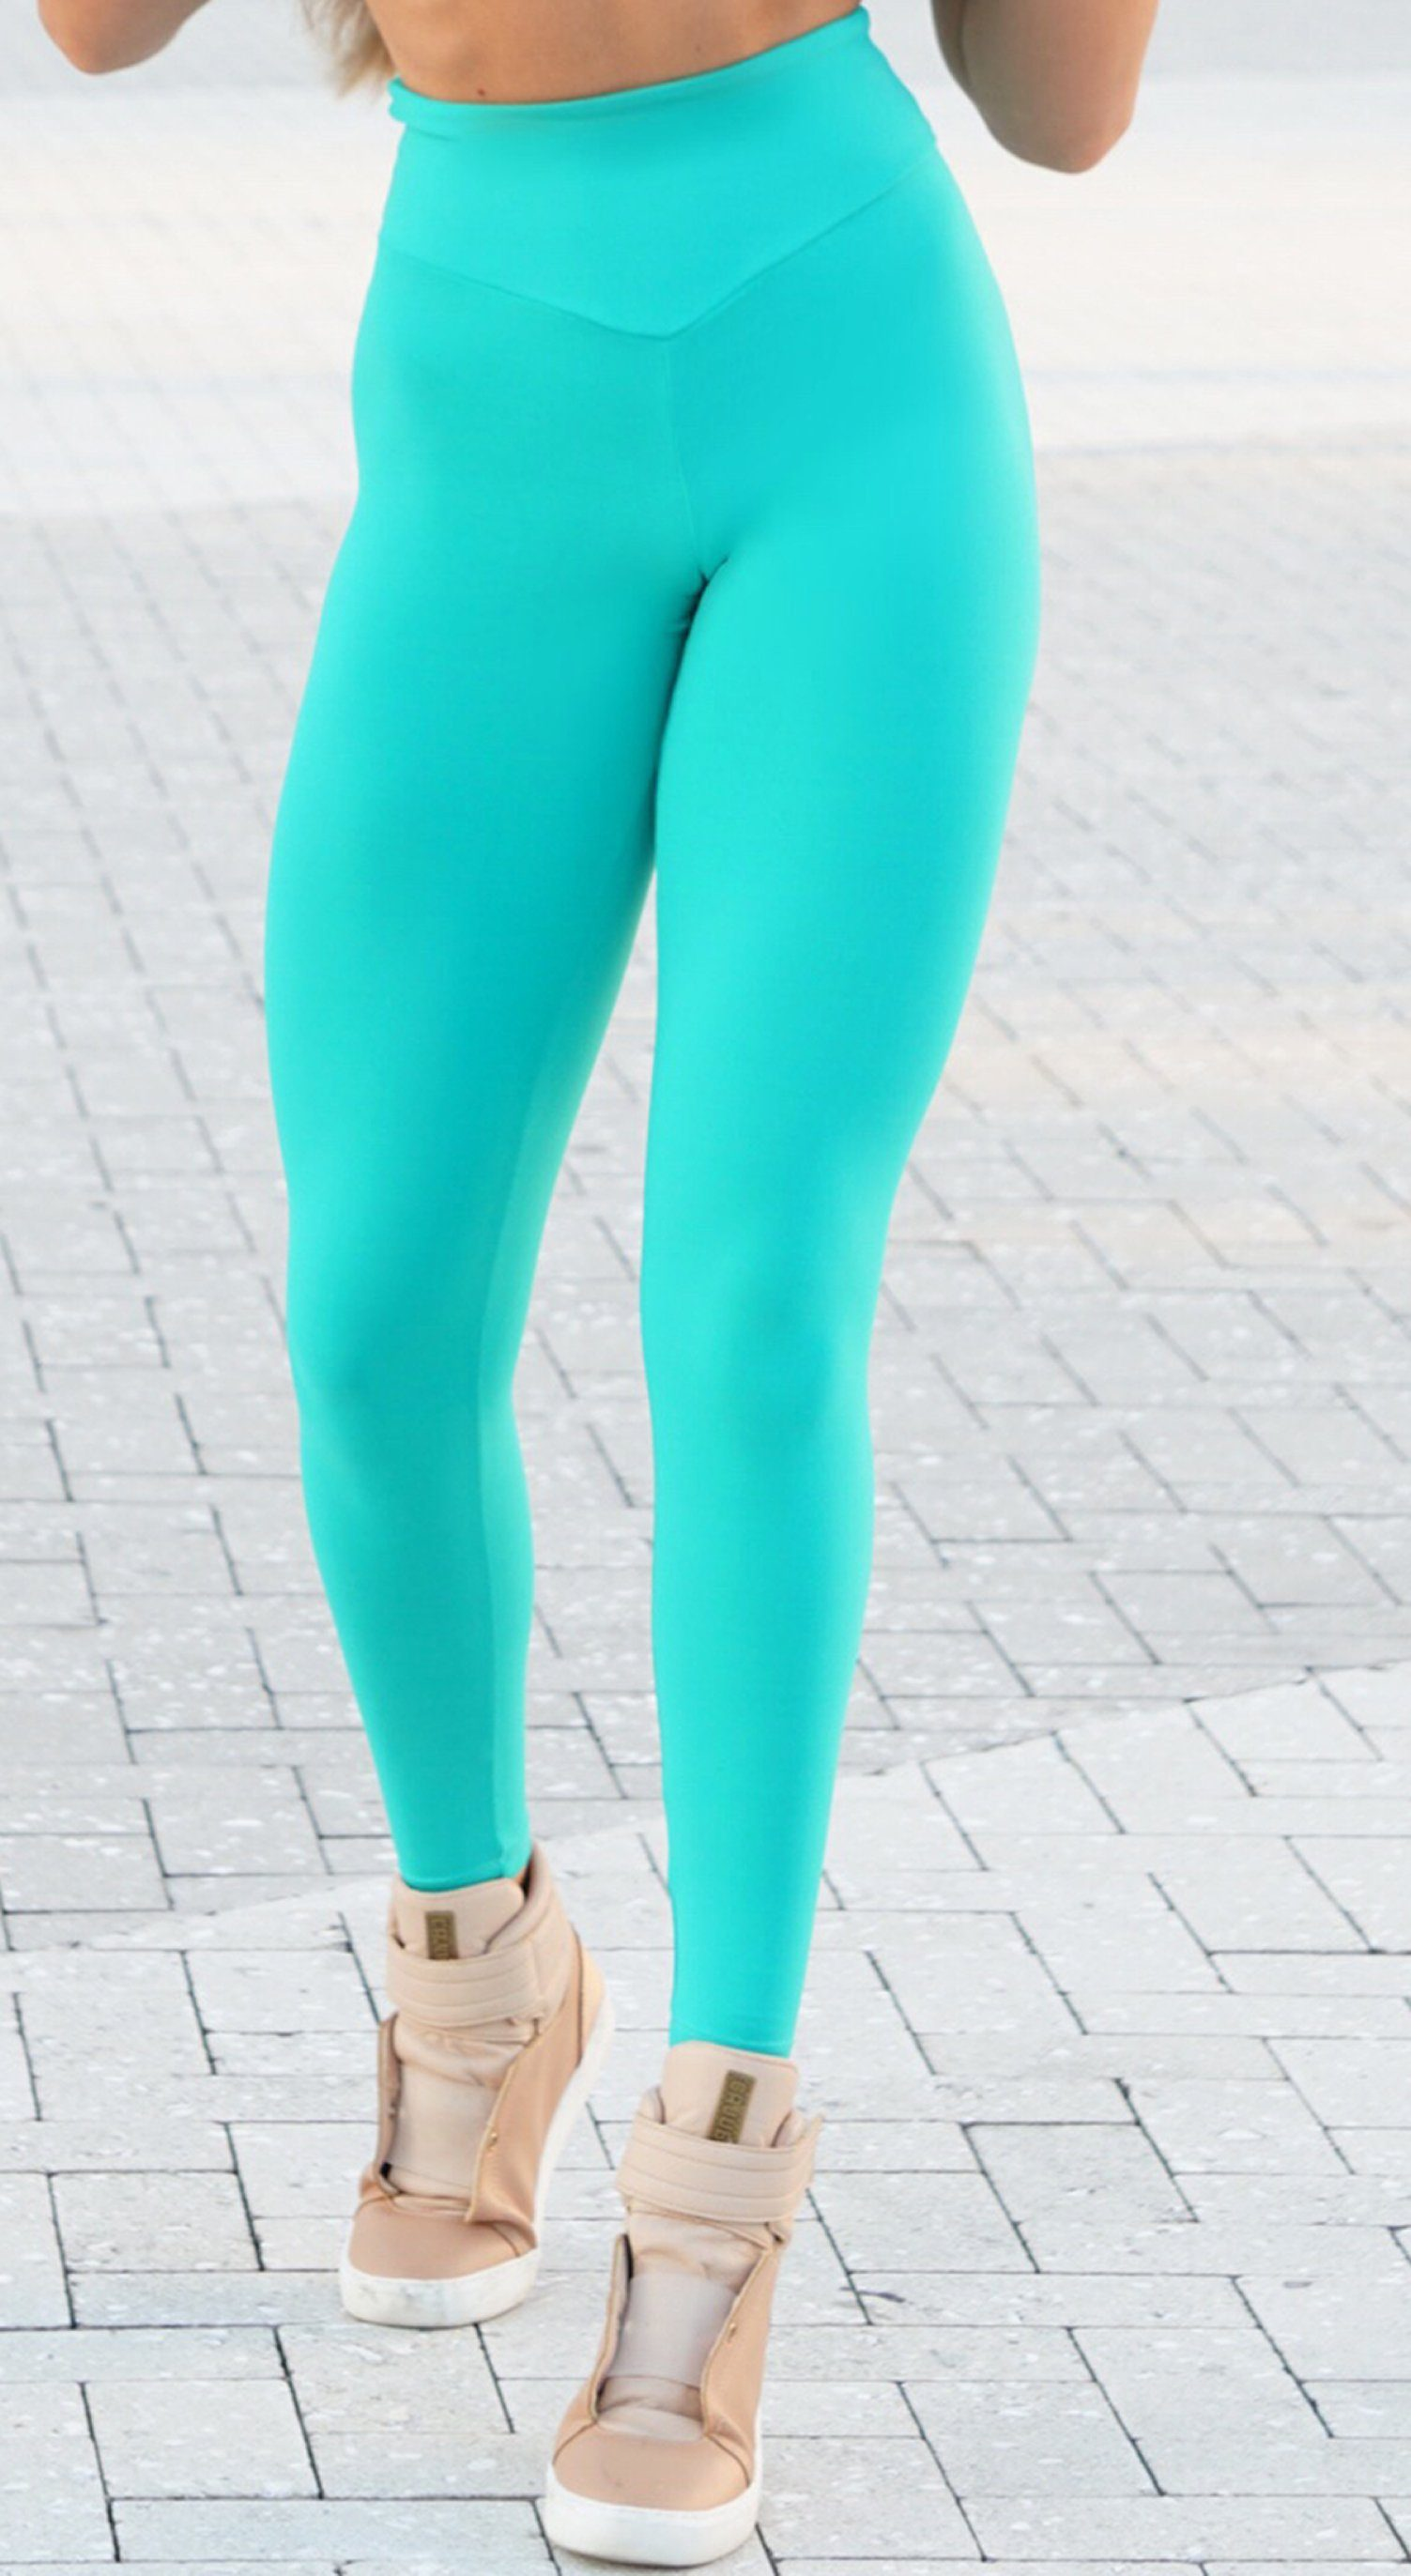 Brazilian Workout Legging - Scrunch Booty Pocket Aquamarine